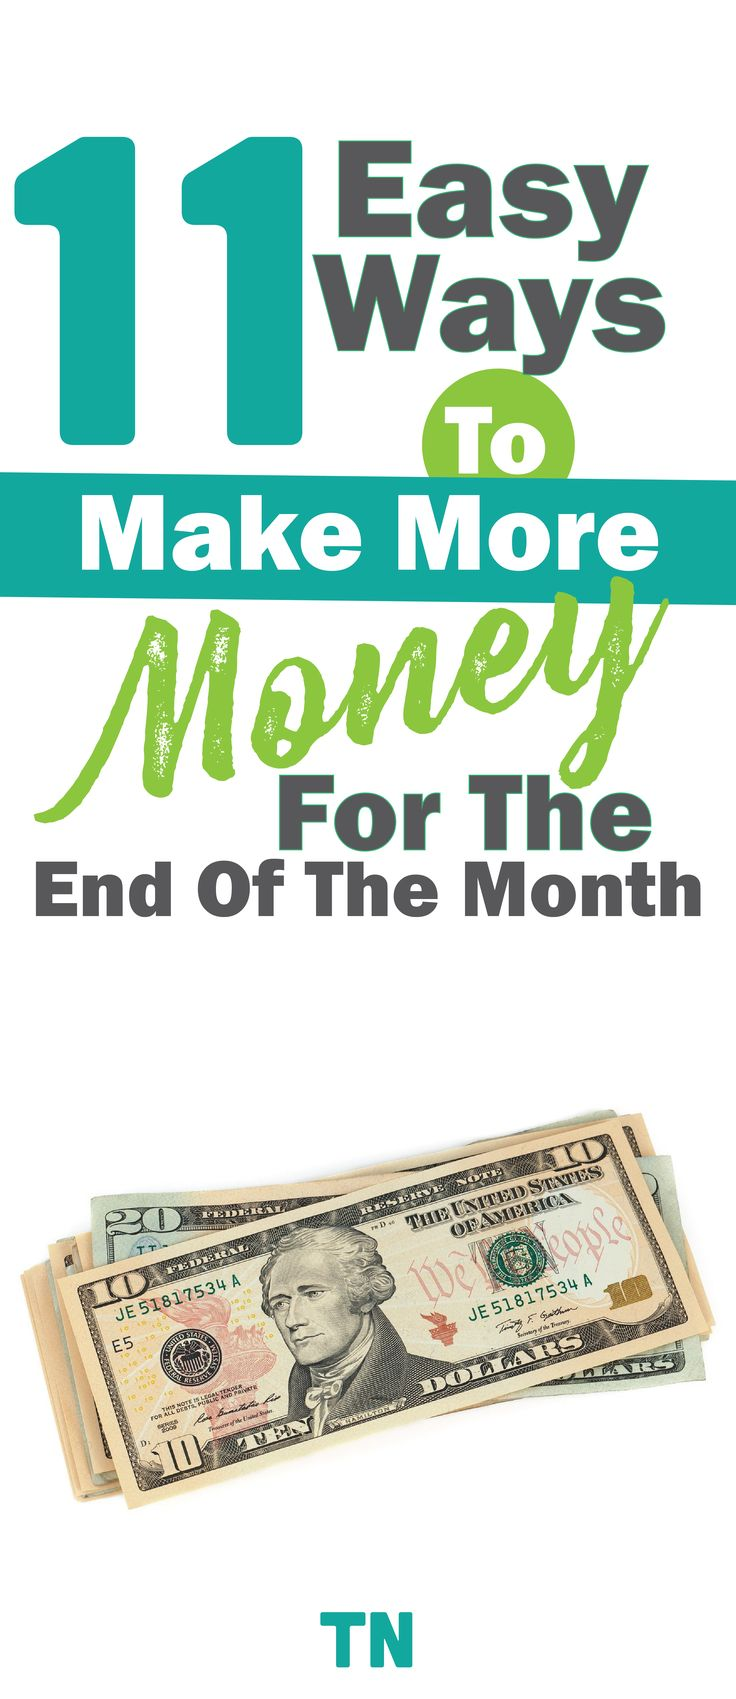 Easy Ways To Make More Money For The End Of The Month | Make Extra Money | Personal Finance | Work From Home | Extra Income | Extra Cash | Make Money Online |